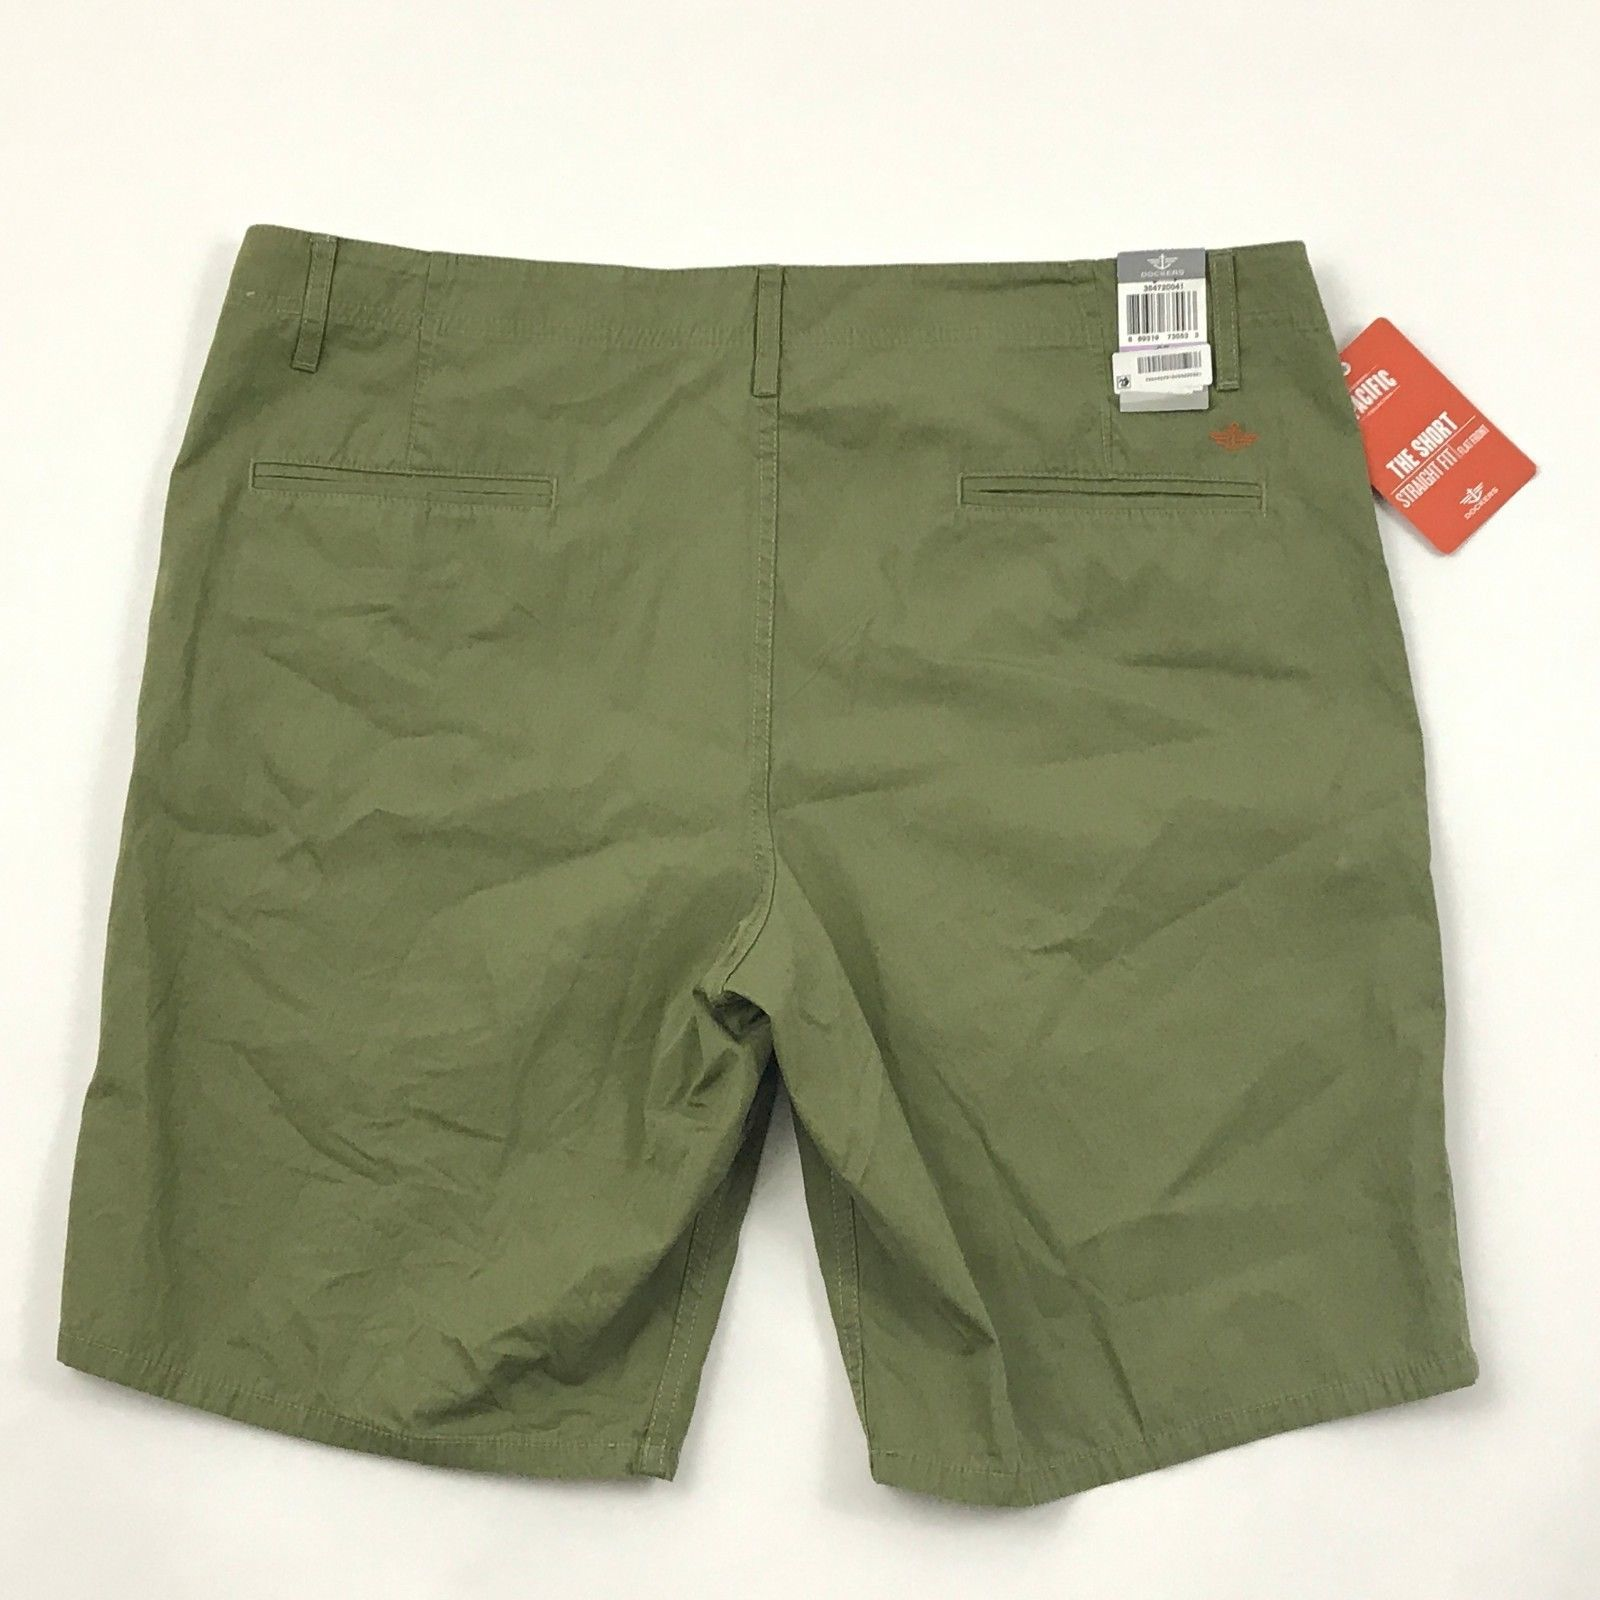 Dockers Mens Shorts Size 38 Olive Green Straight Fit Flat Front Pacific Line $48